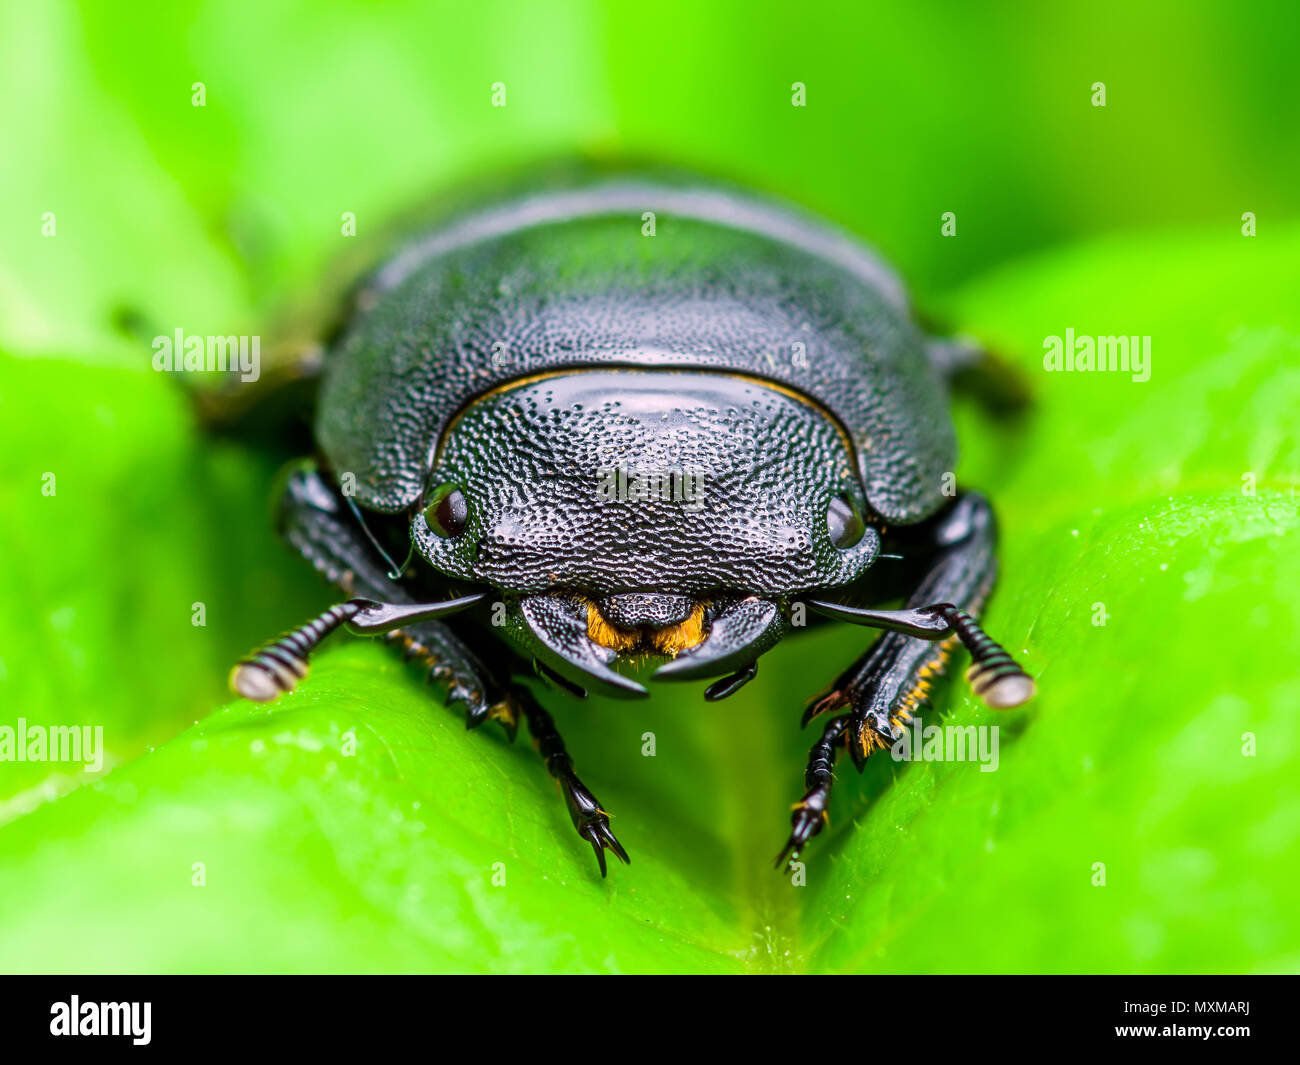 Dark Beetle Insect on Green Leaf Background - Stock Image